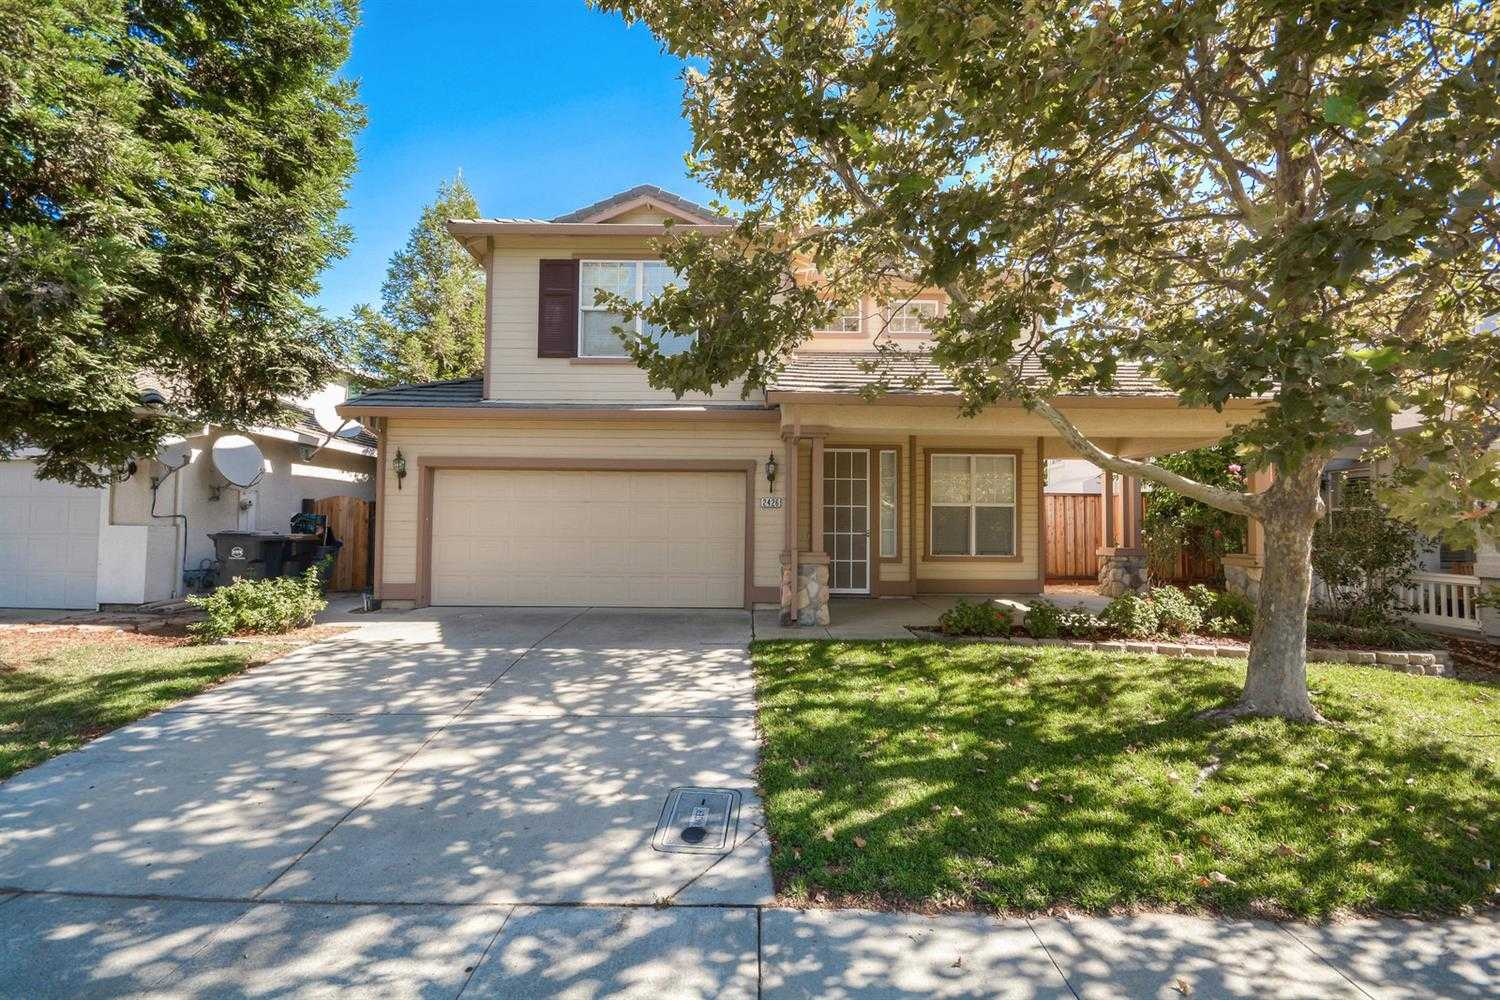 $790,000 - 5Br/3Ba -  for Sale in Davis